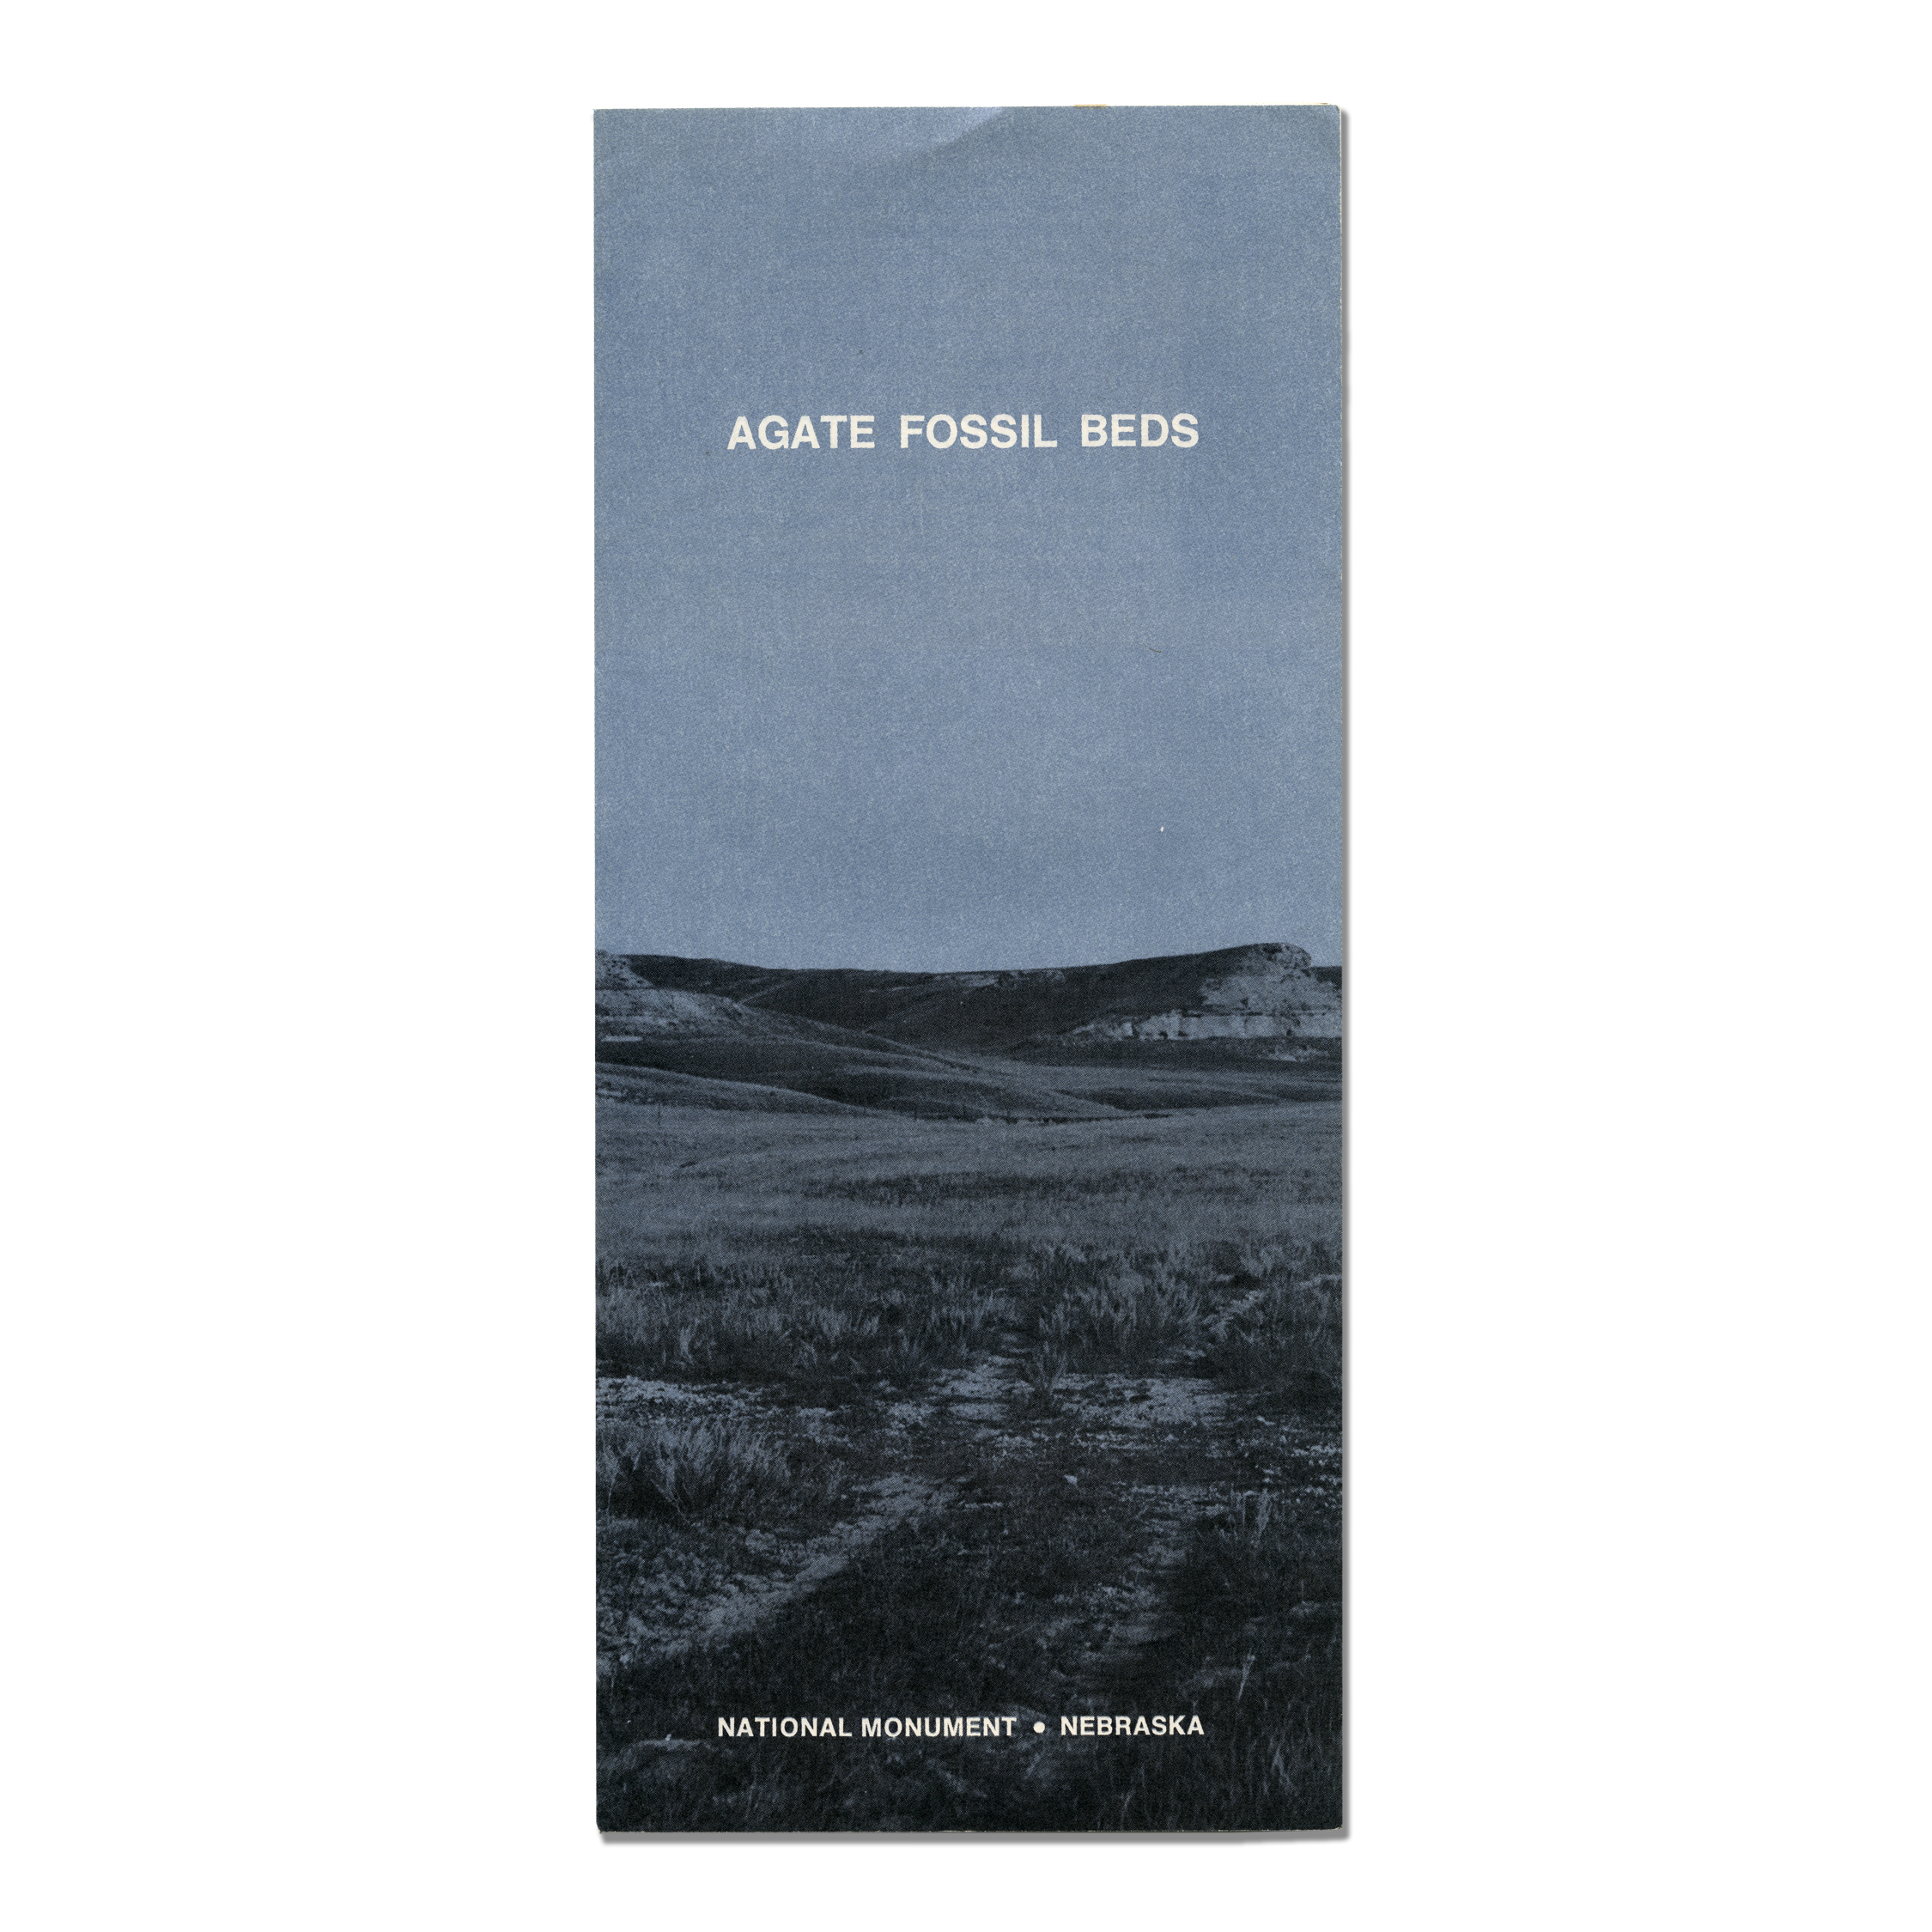 1972_agate_fossil_beds_national_monument_brochure.jpg